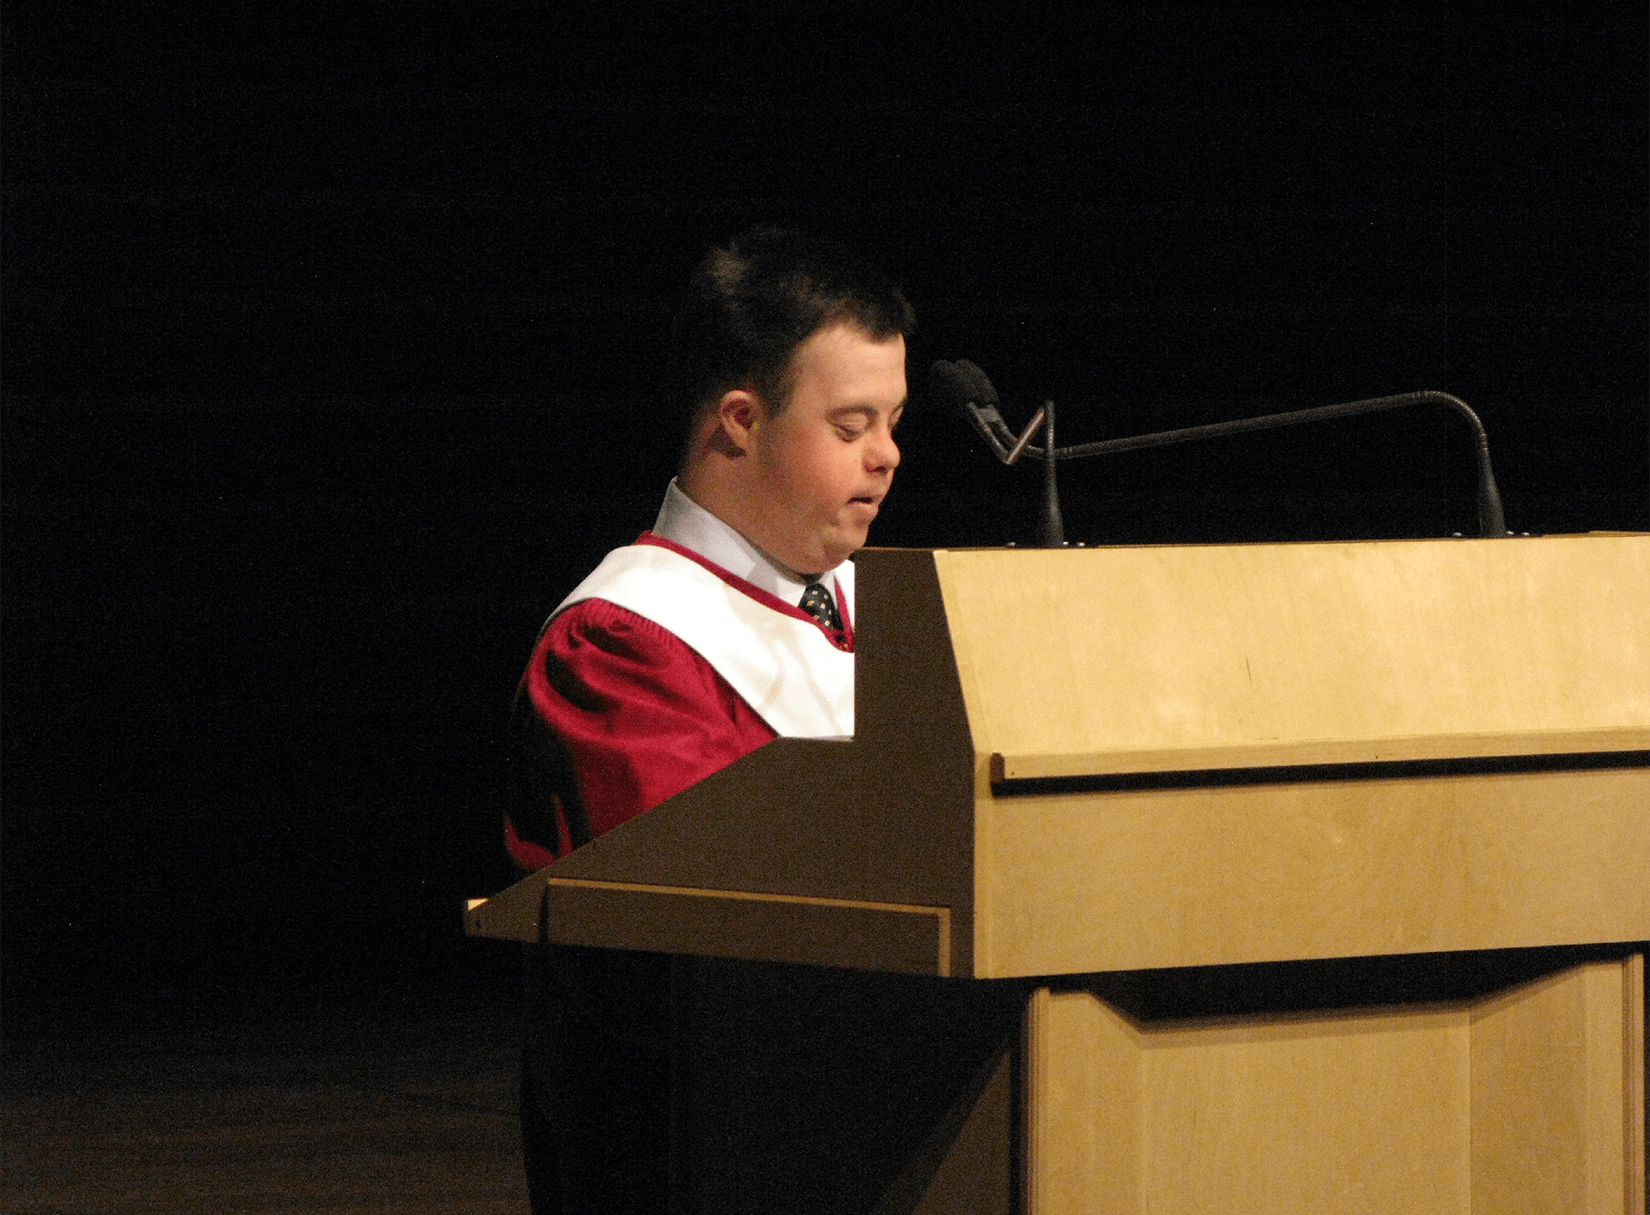 Paul Valedictorian Speech